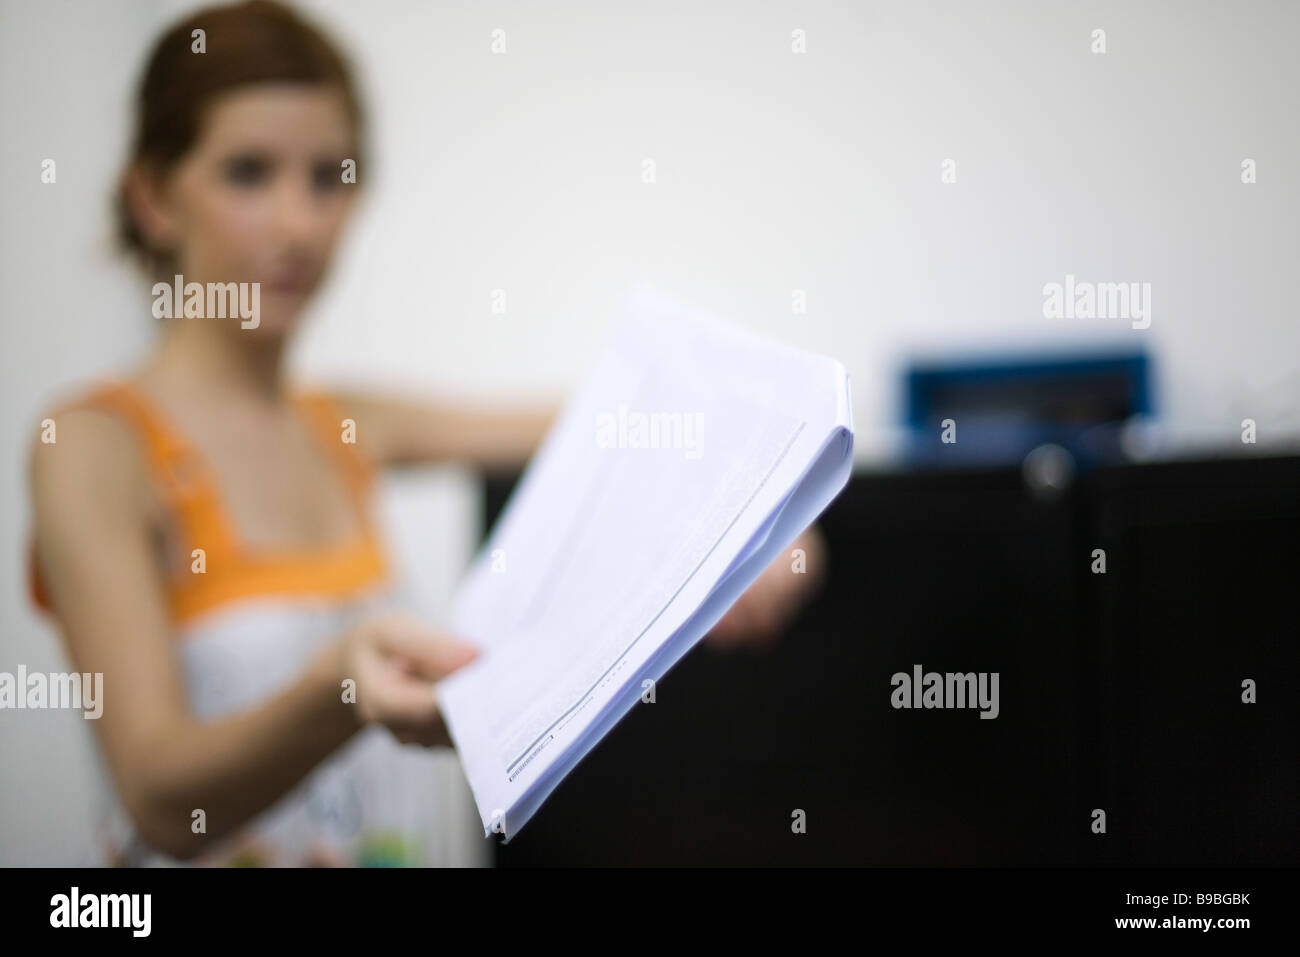 Woman holding out document, focus on foreground - Stock Image